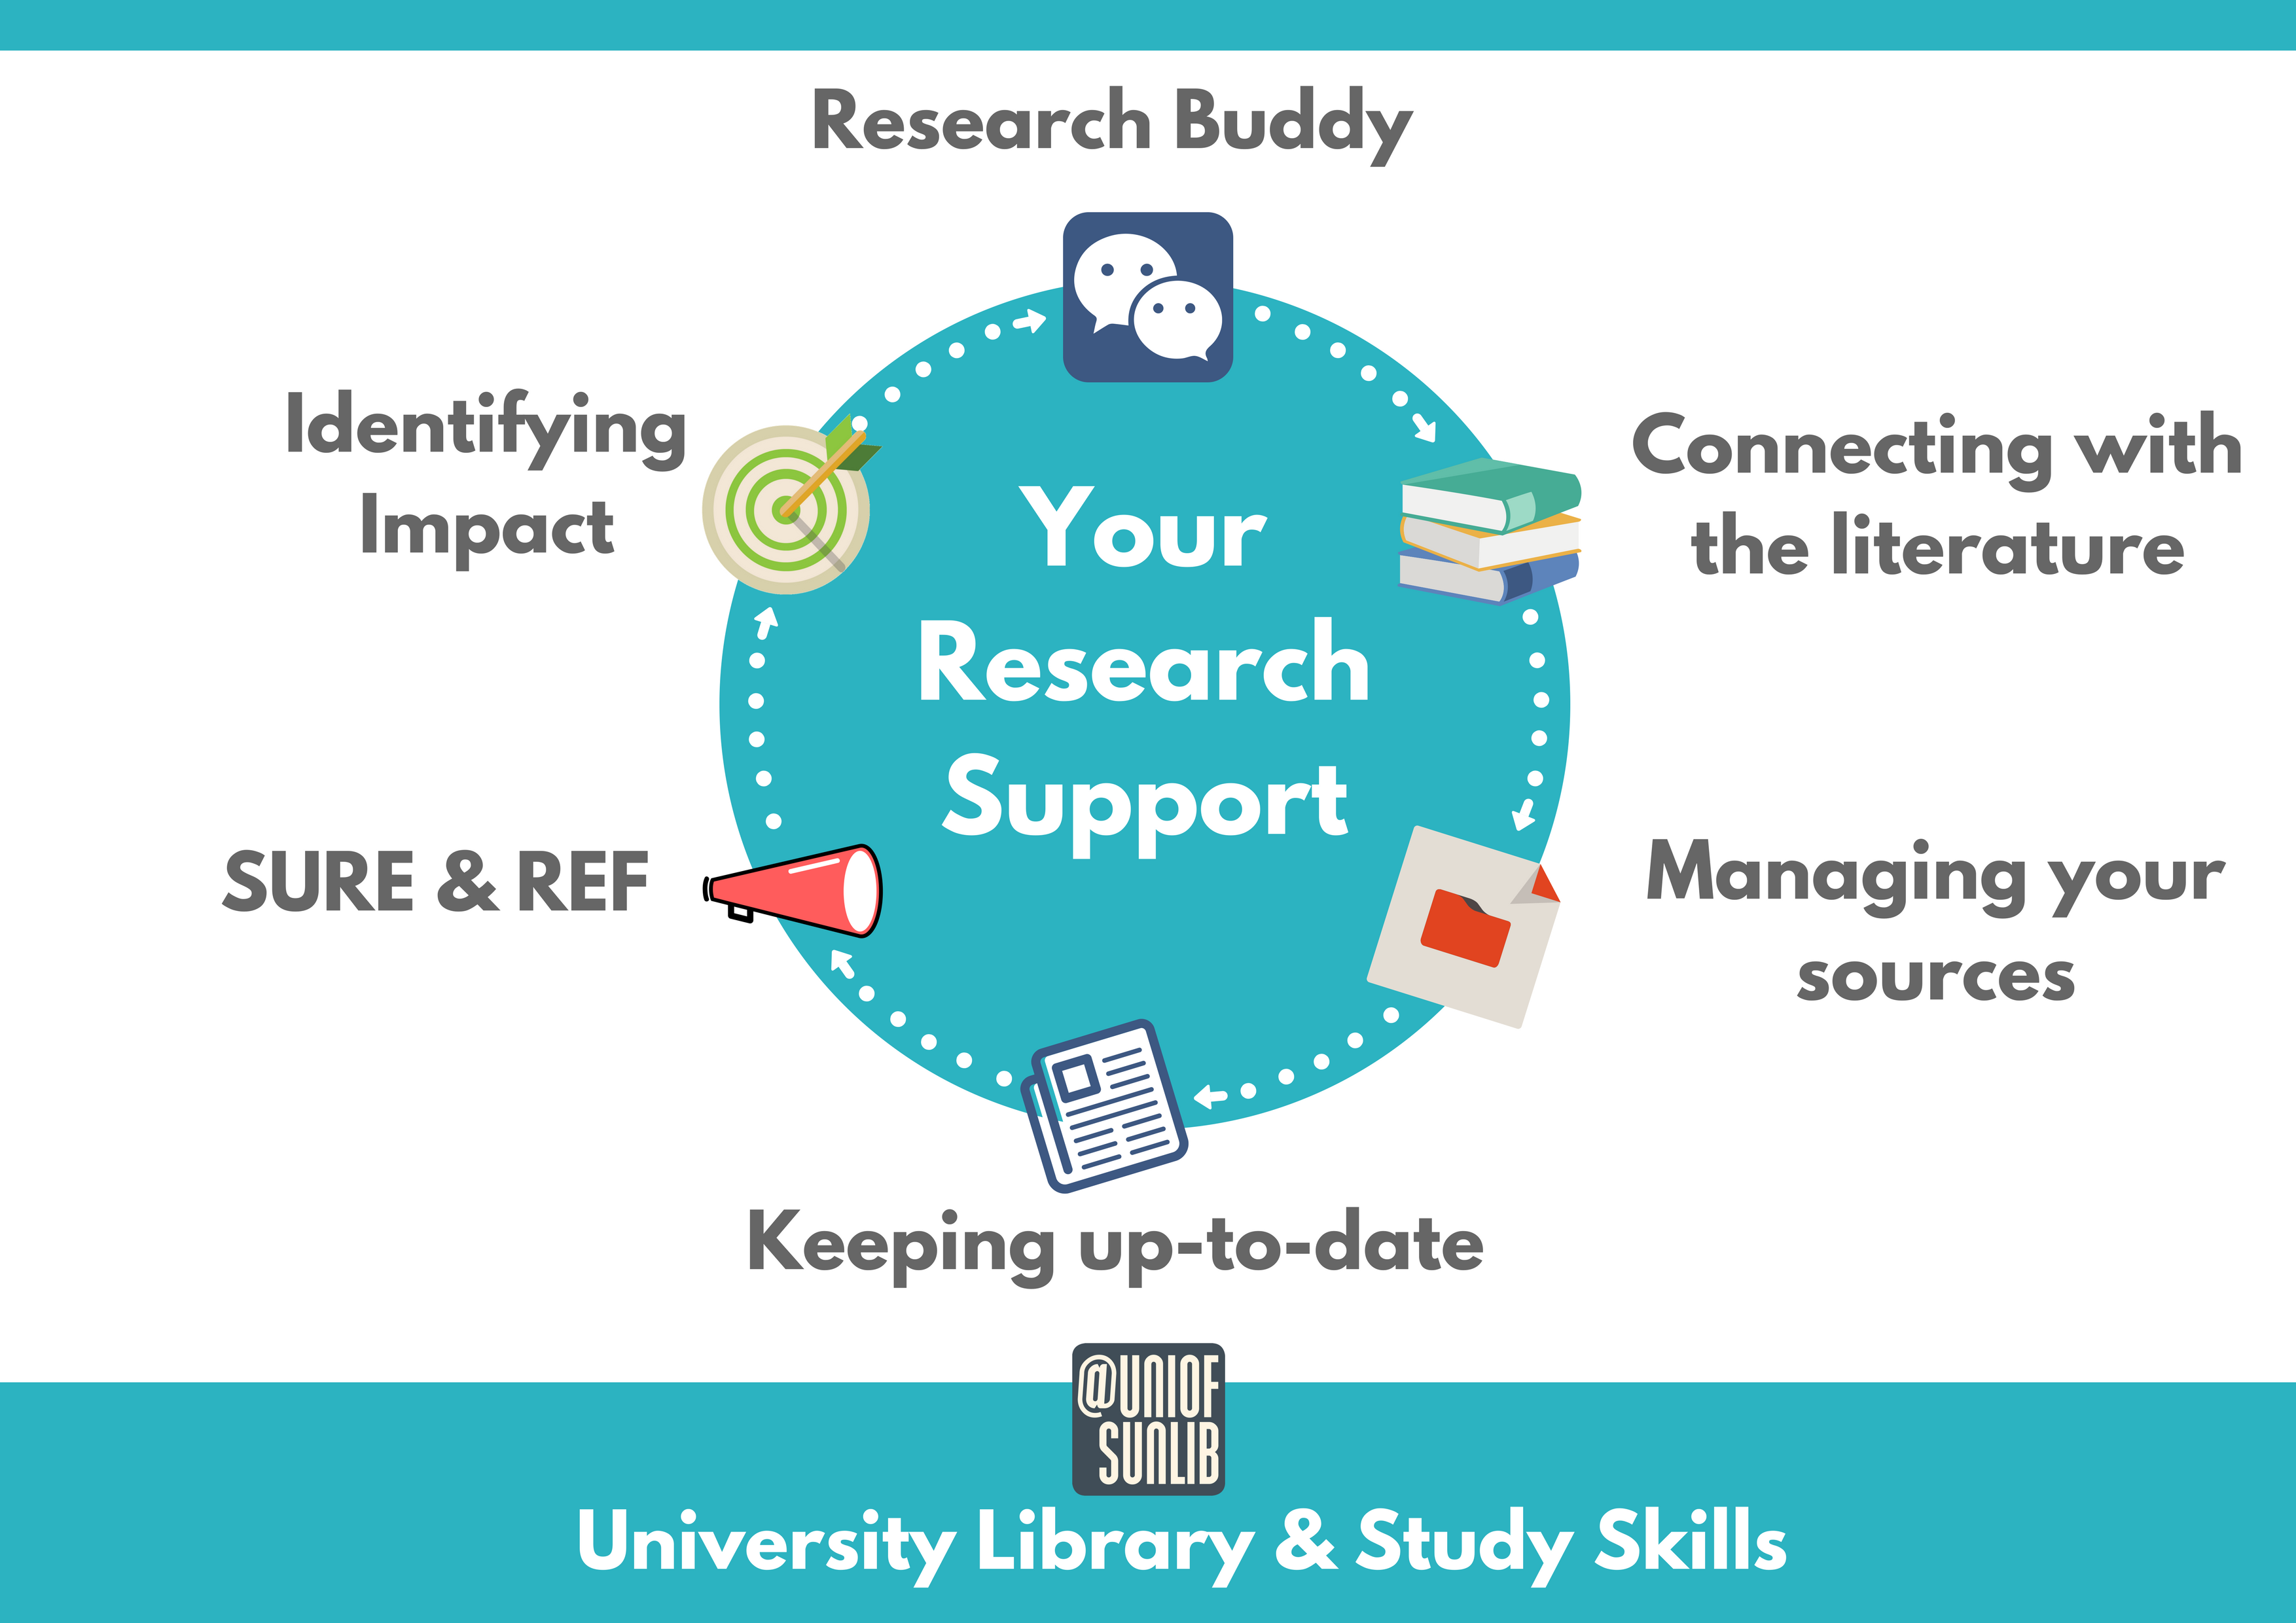 Research support diagram